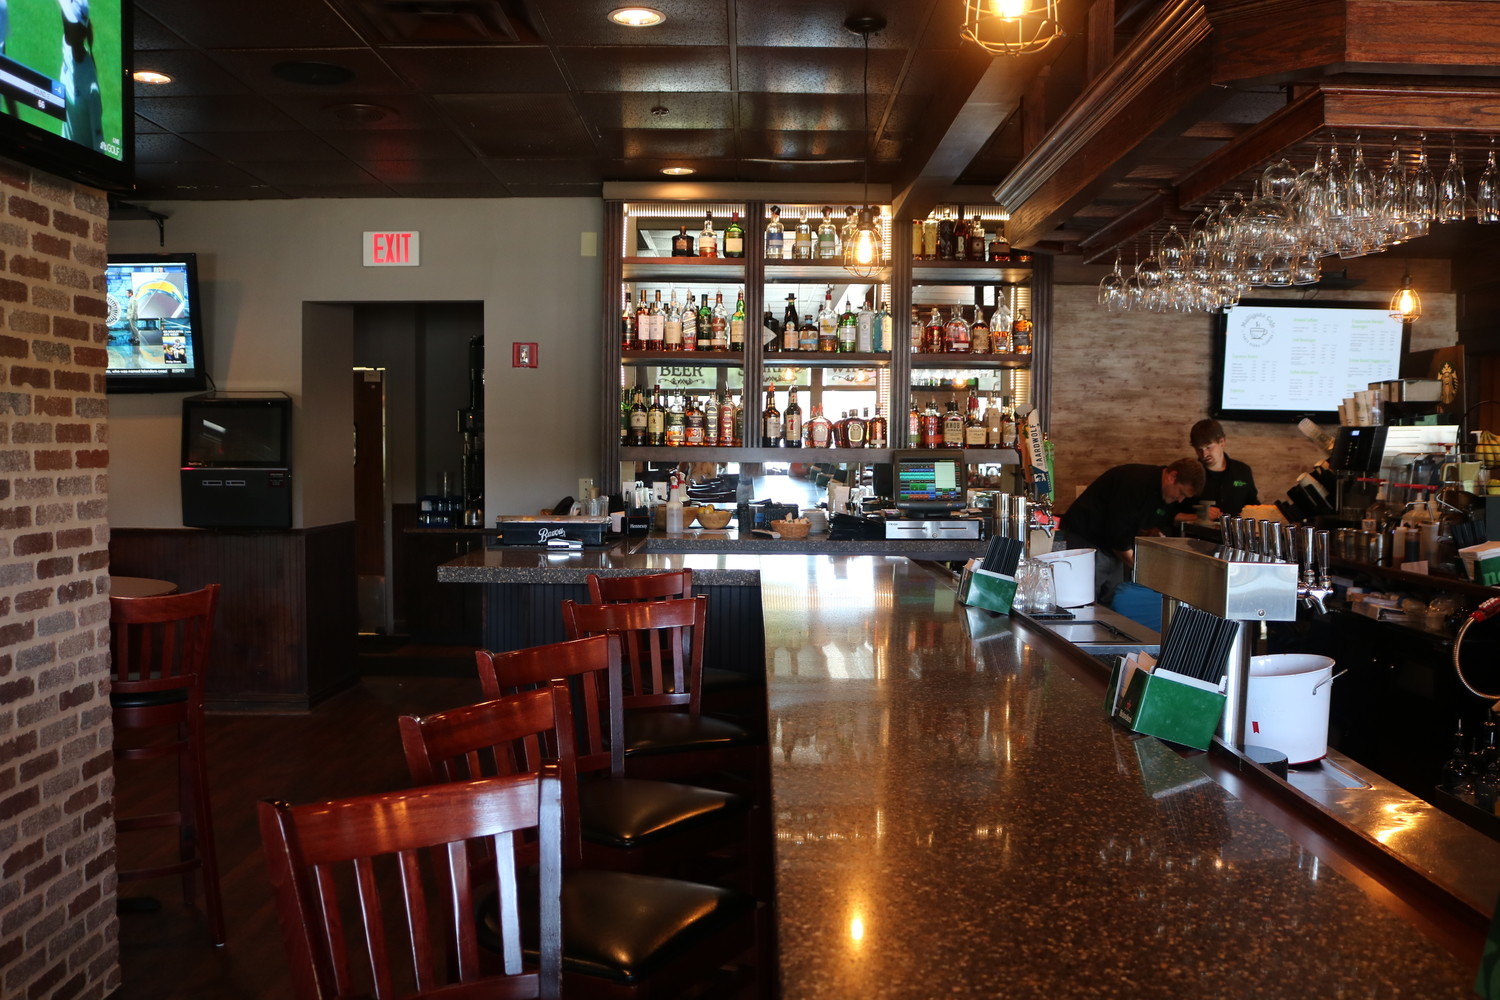 Mulligan's Pub features a bar area where guests can enjoy a large liquor selection, draft beer and more.